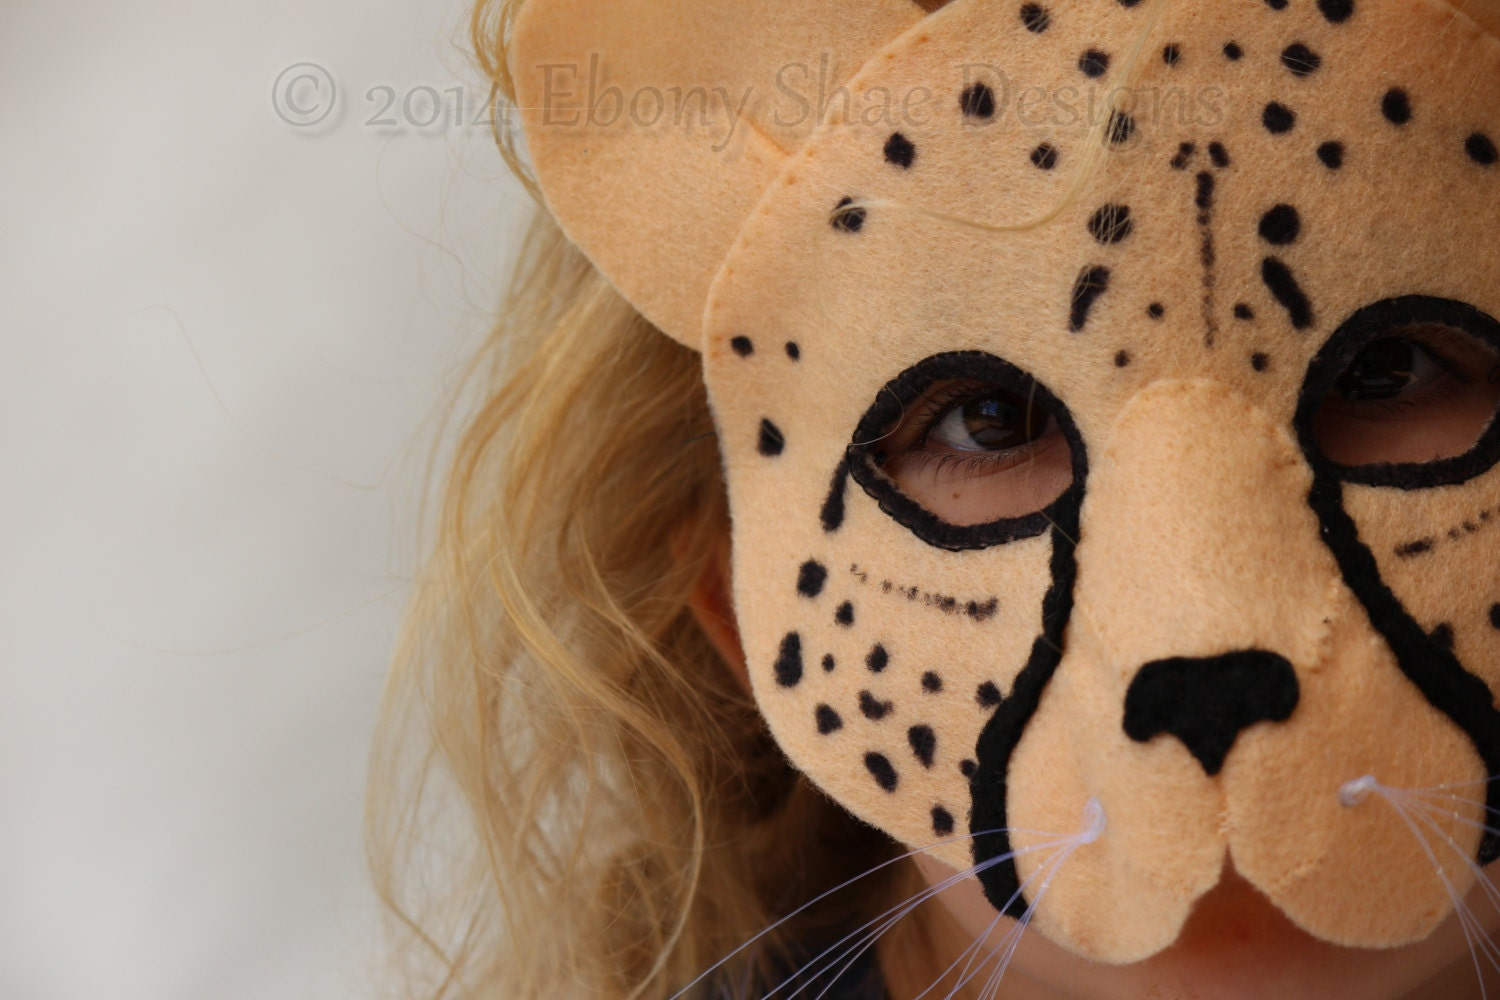 Felt cheetah mask pattern pdf instant download by ebonyshae for Cheetah face mask template